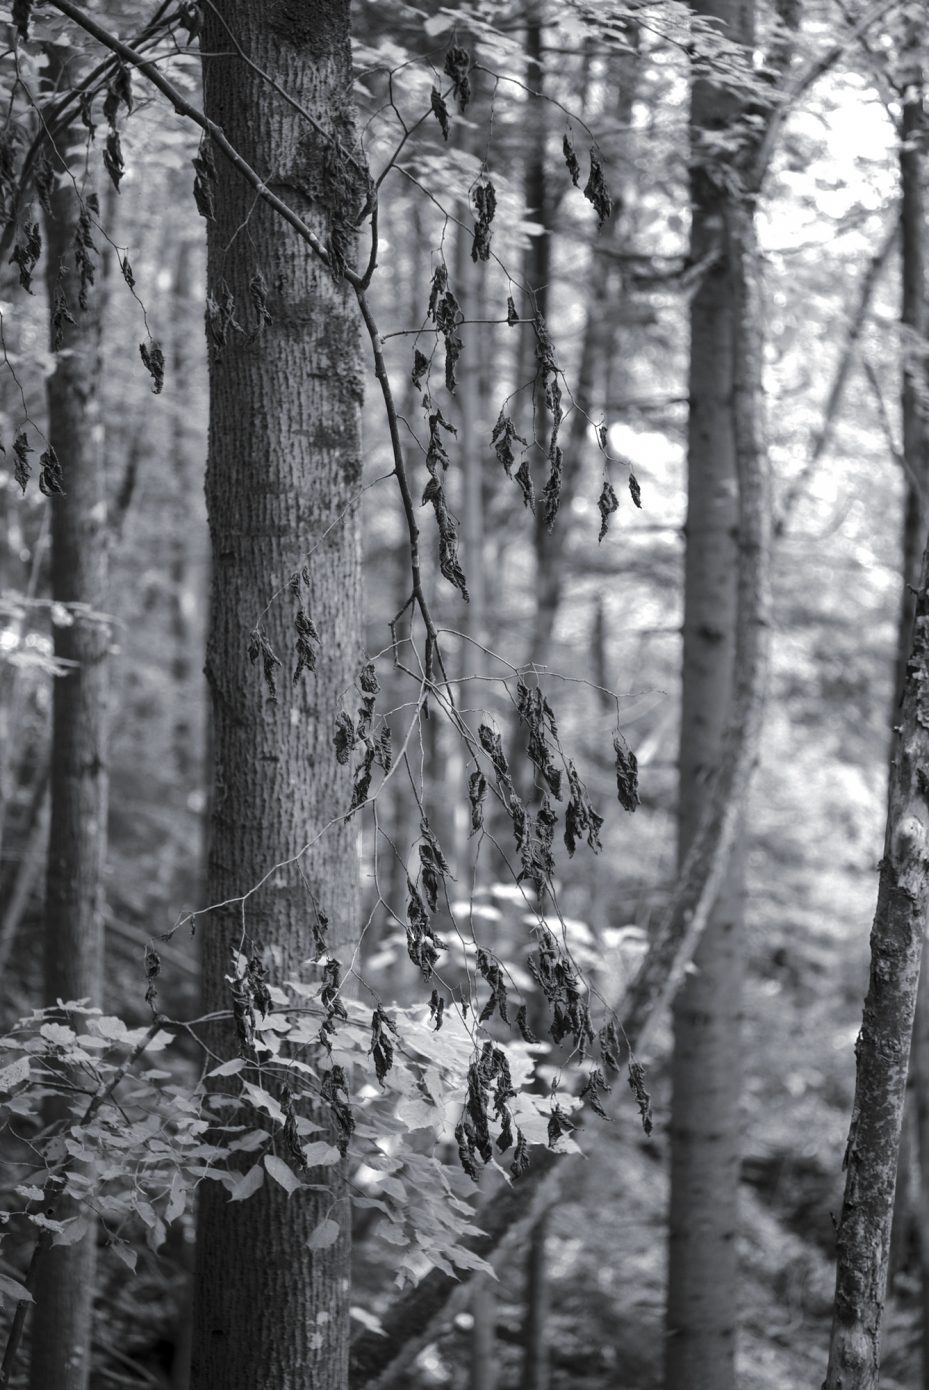 Dry_Leaves_and_a_Curve.jpg